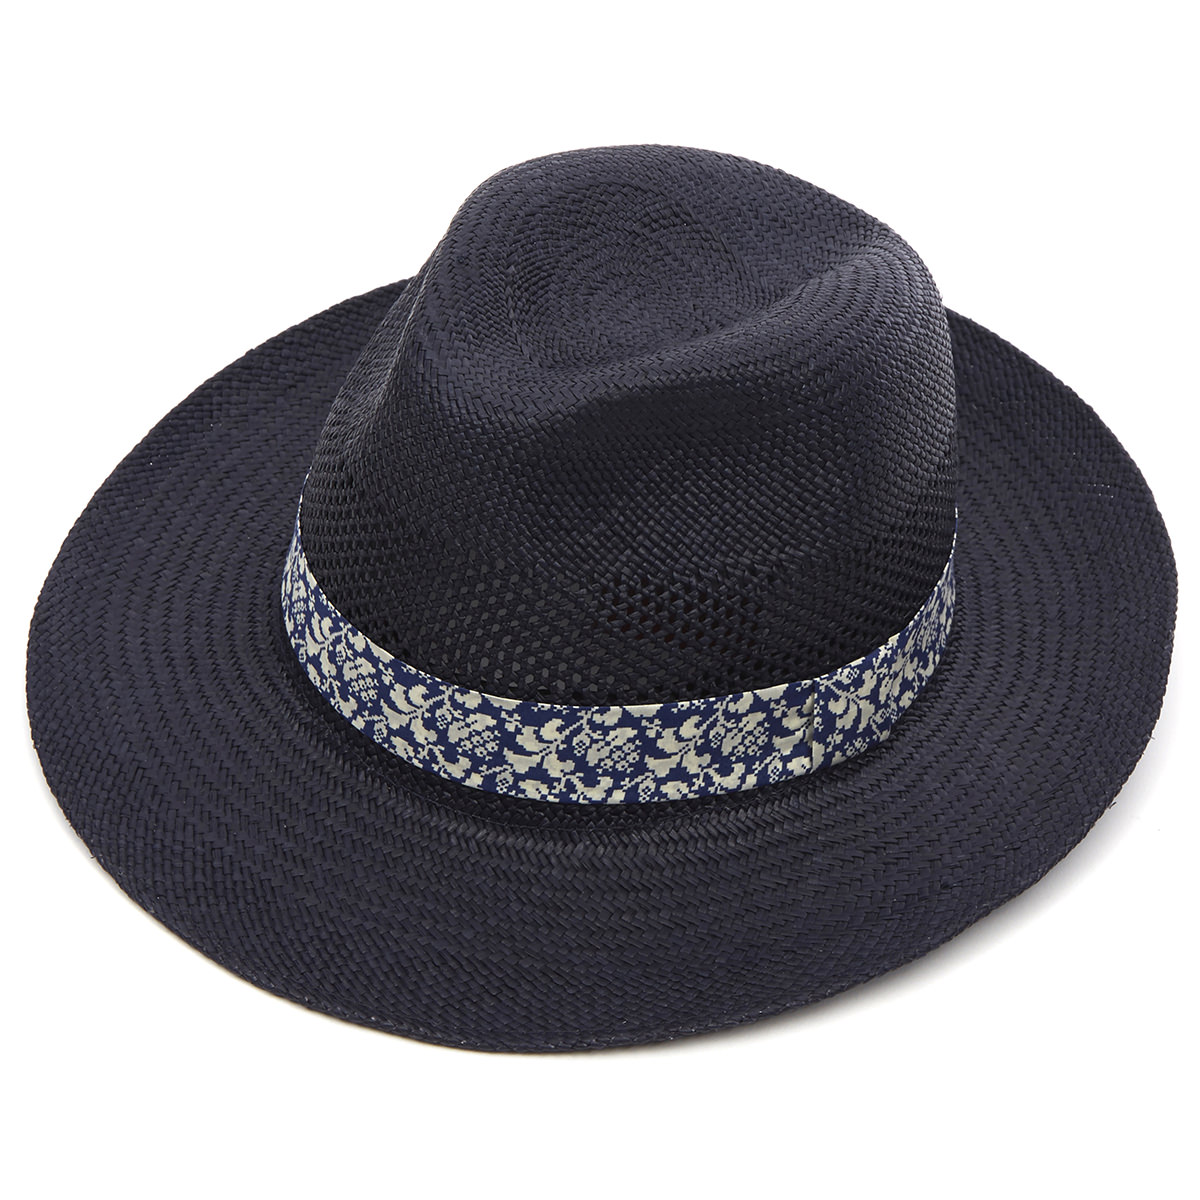 Notting Hill Preset Panama Hat - Navy Perforated XL